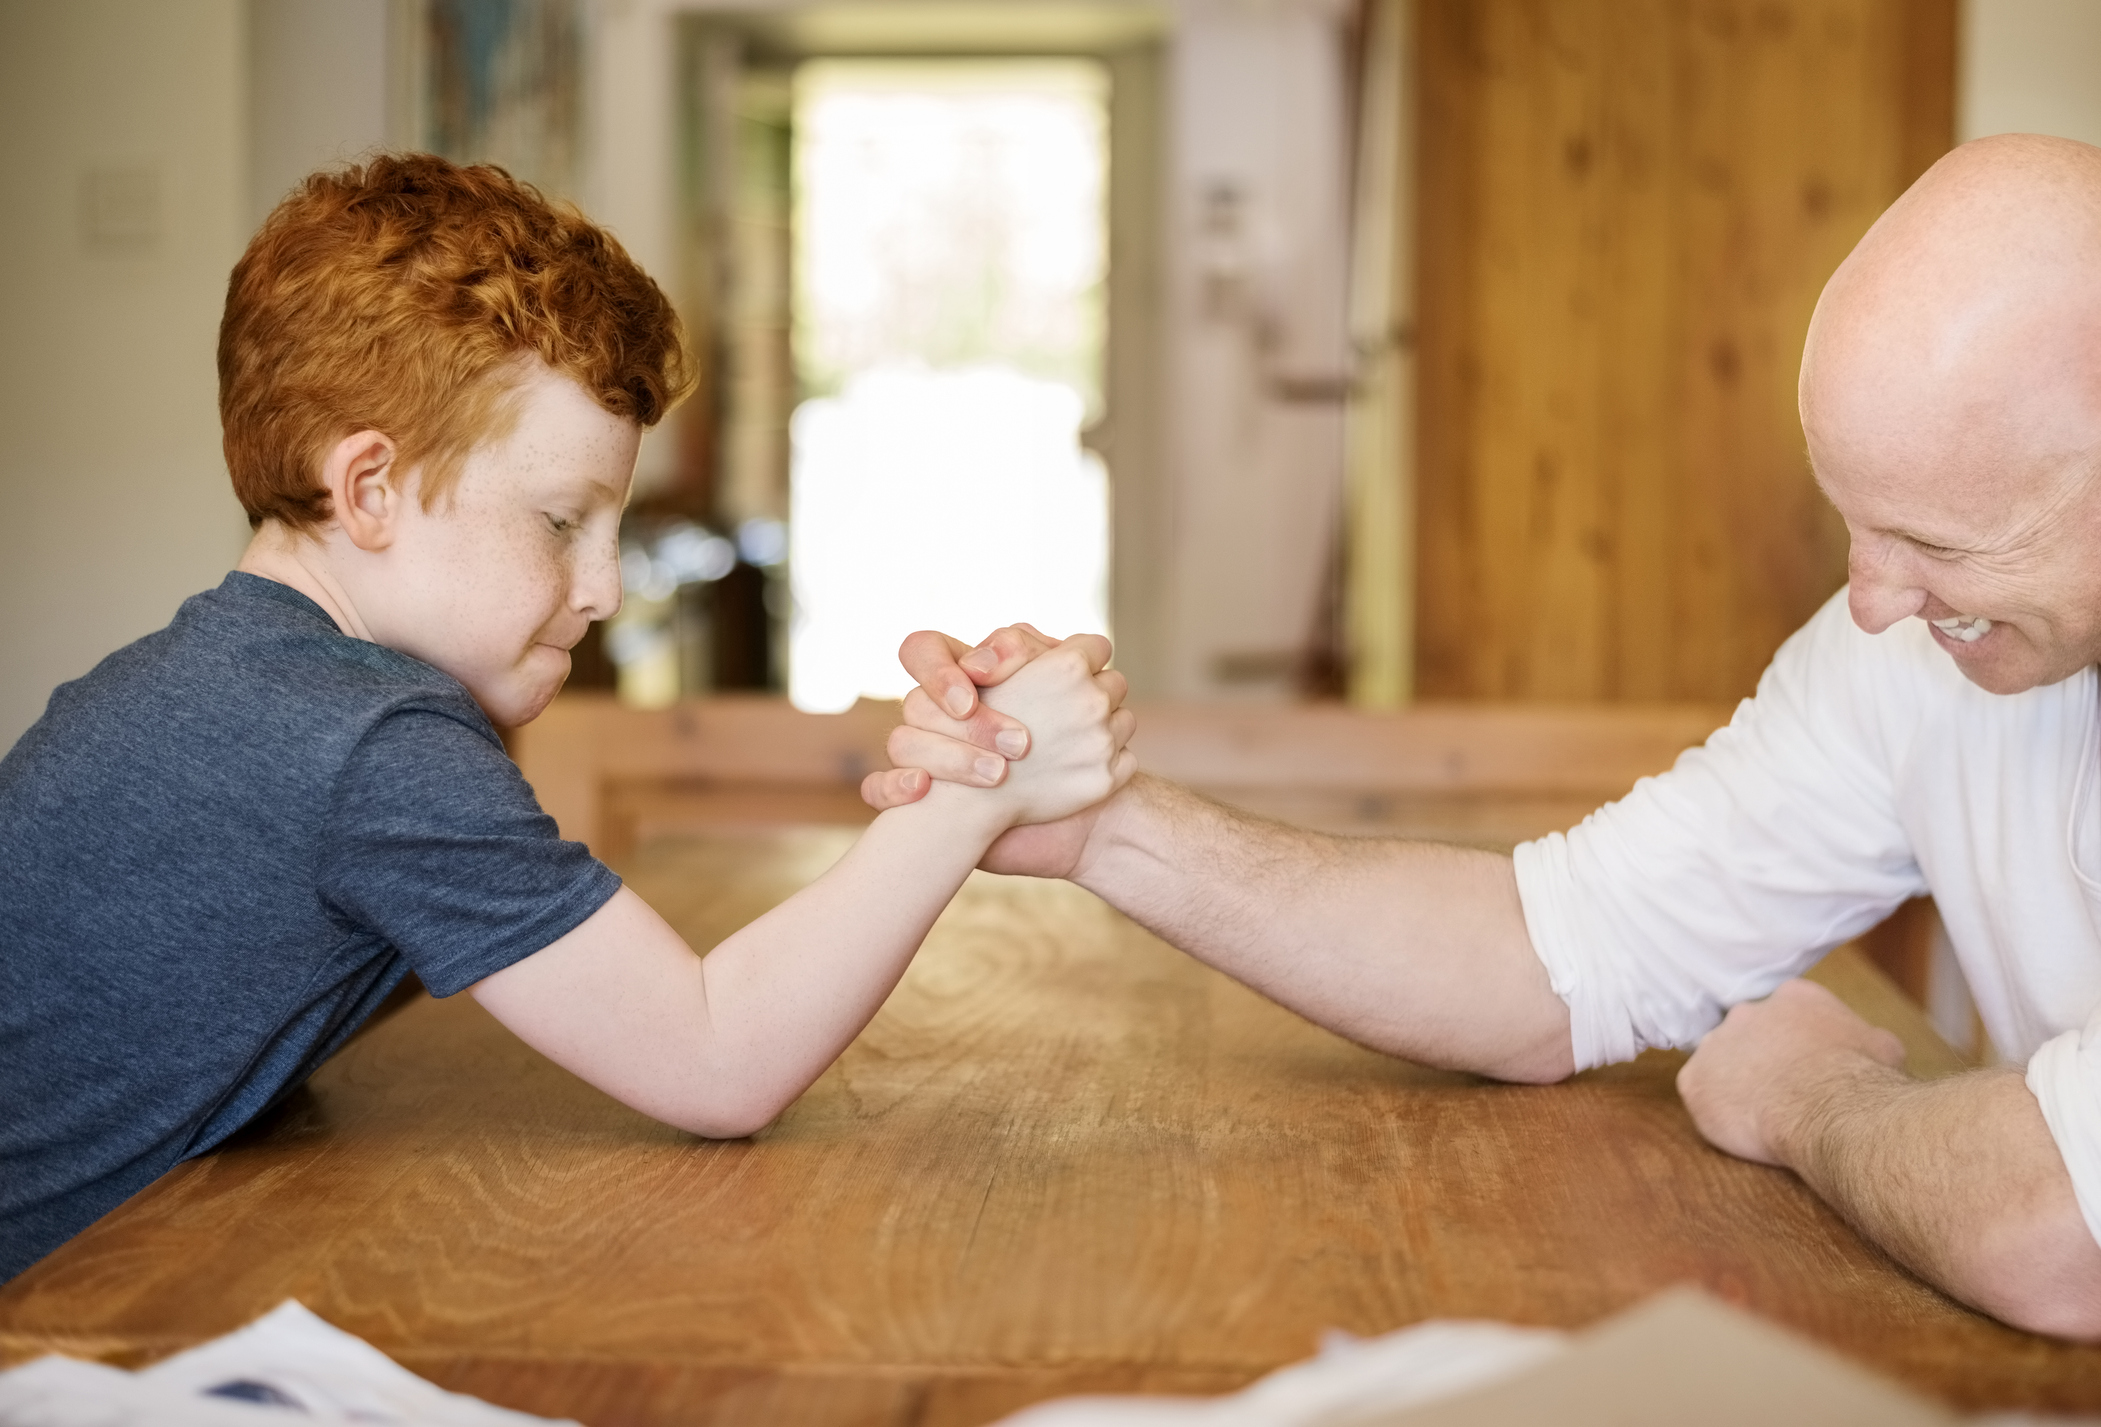 Small child defeating grown man at arm wrestling.